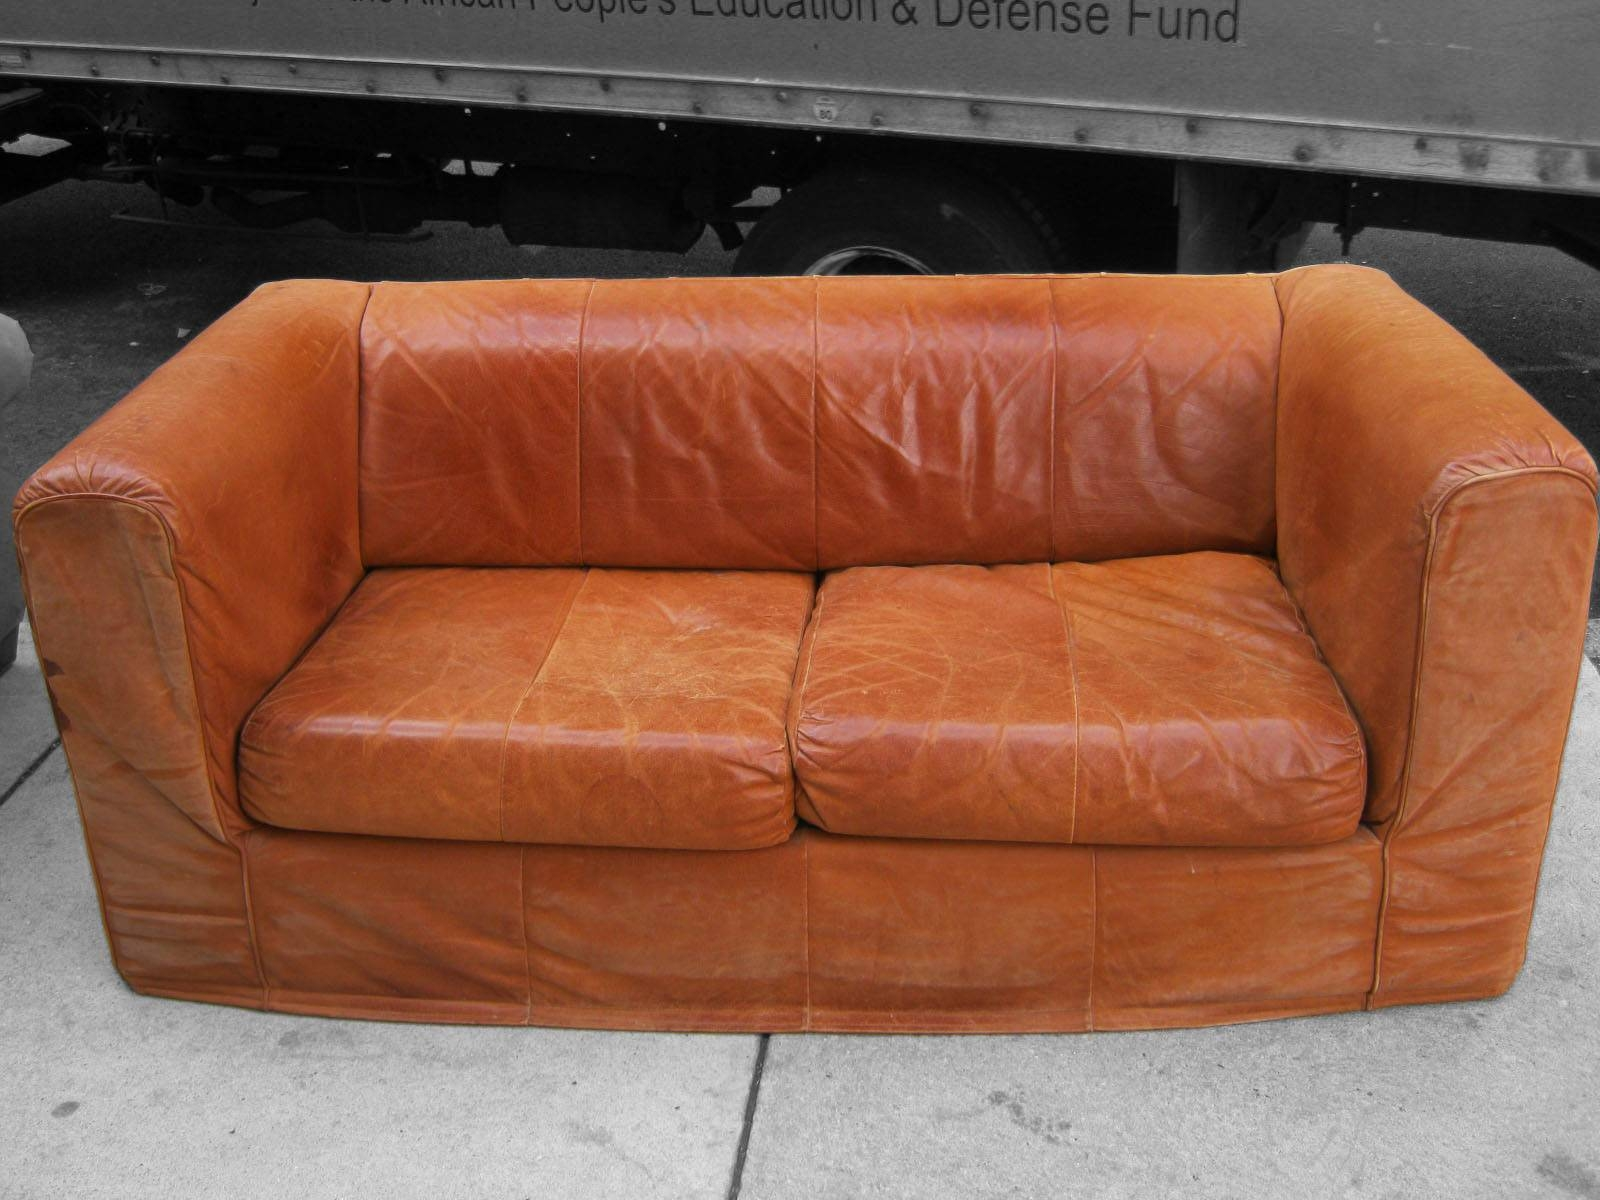 Uhuru Furniture & Collectibles: Camel Colored Leather Sofa – Sold With Camel Colored Leather Sofas (View 15 of 15)